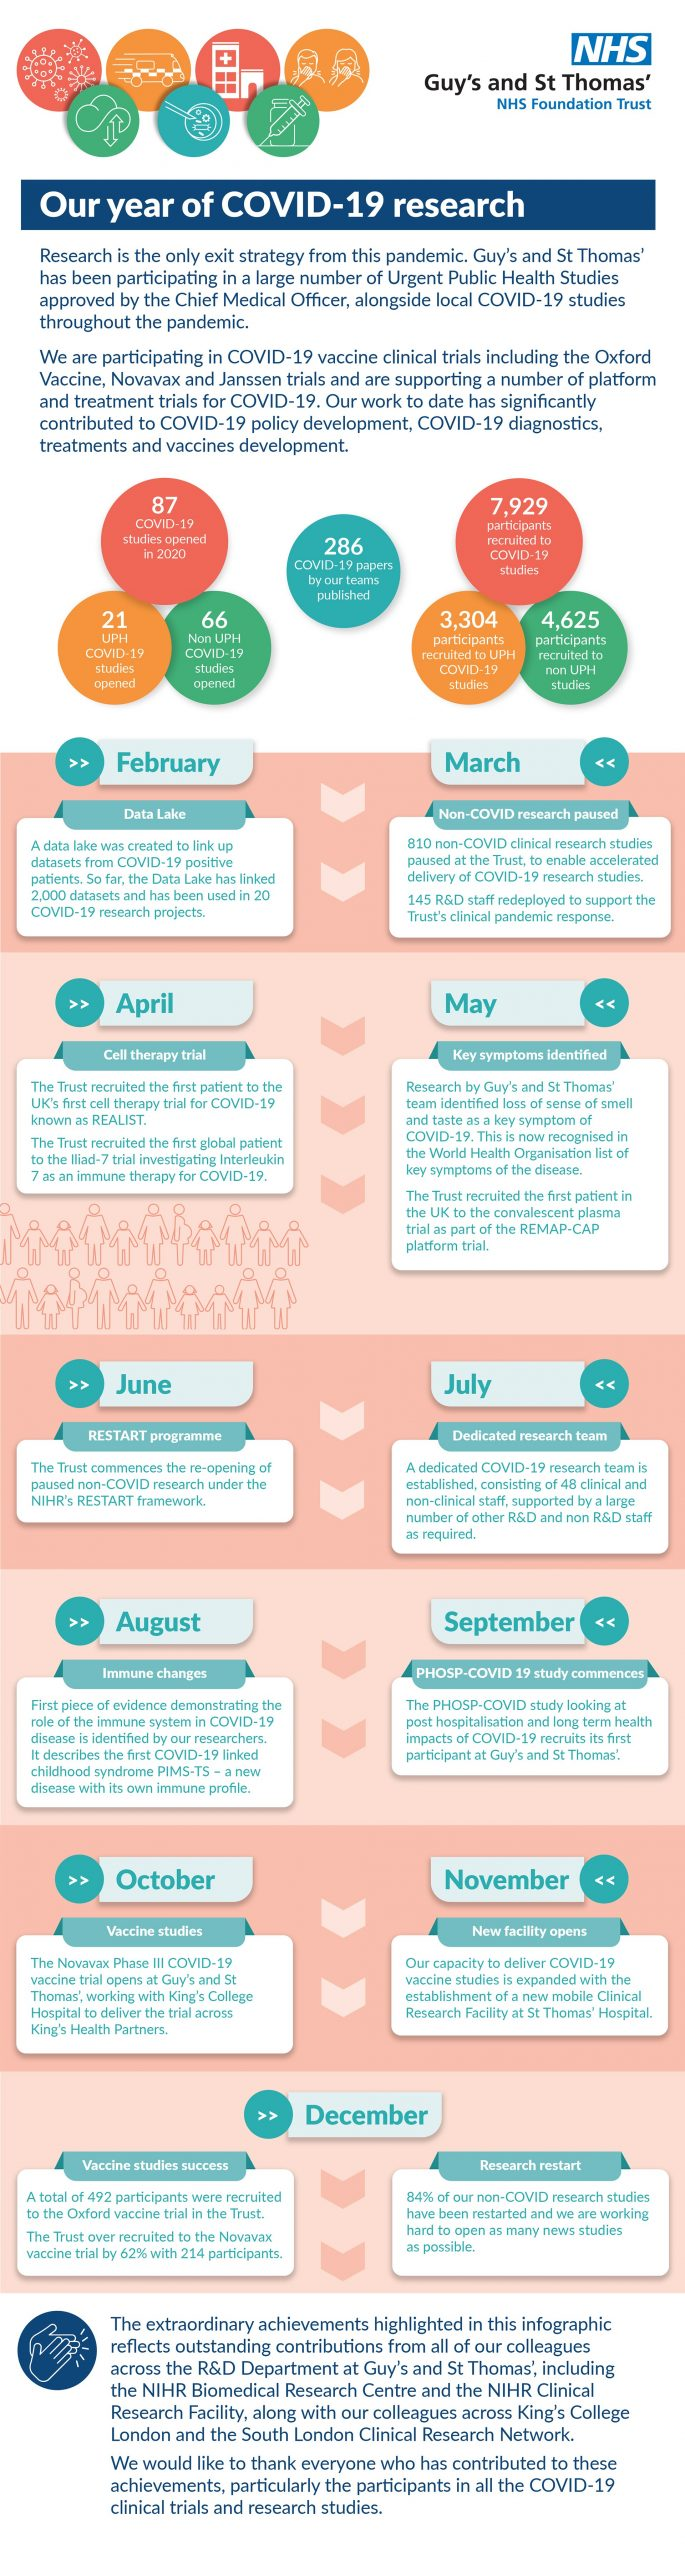 Our year of COVID-19 research infographic